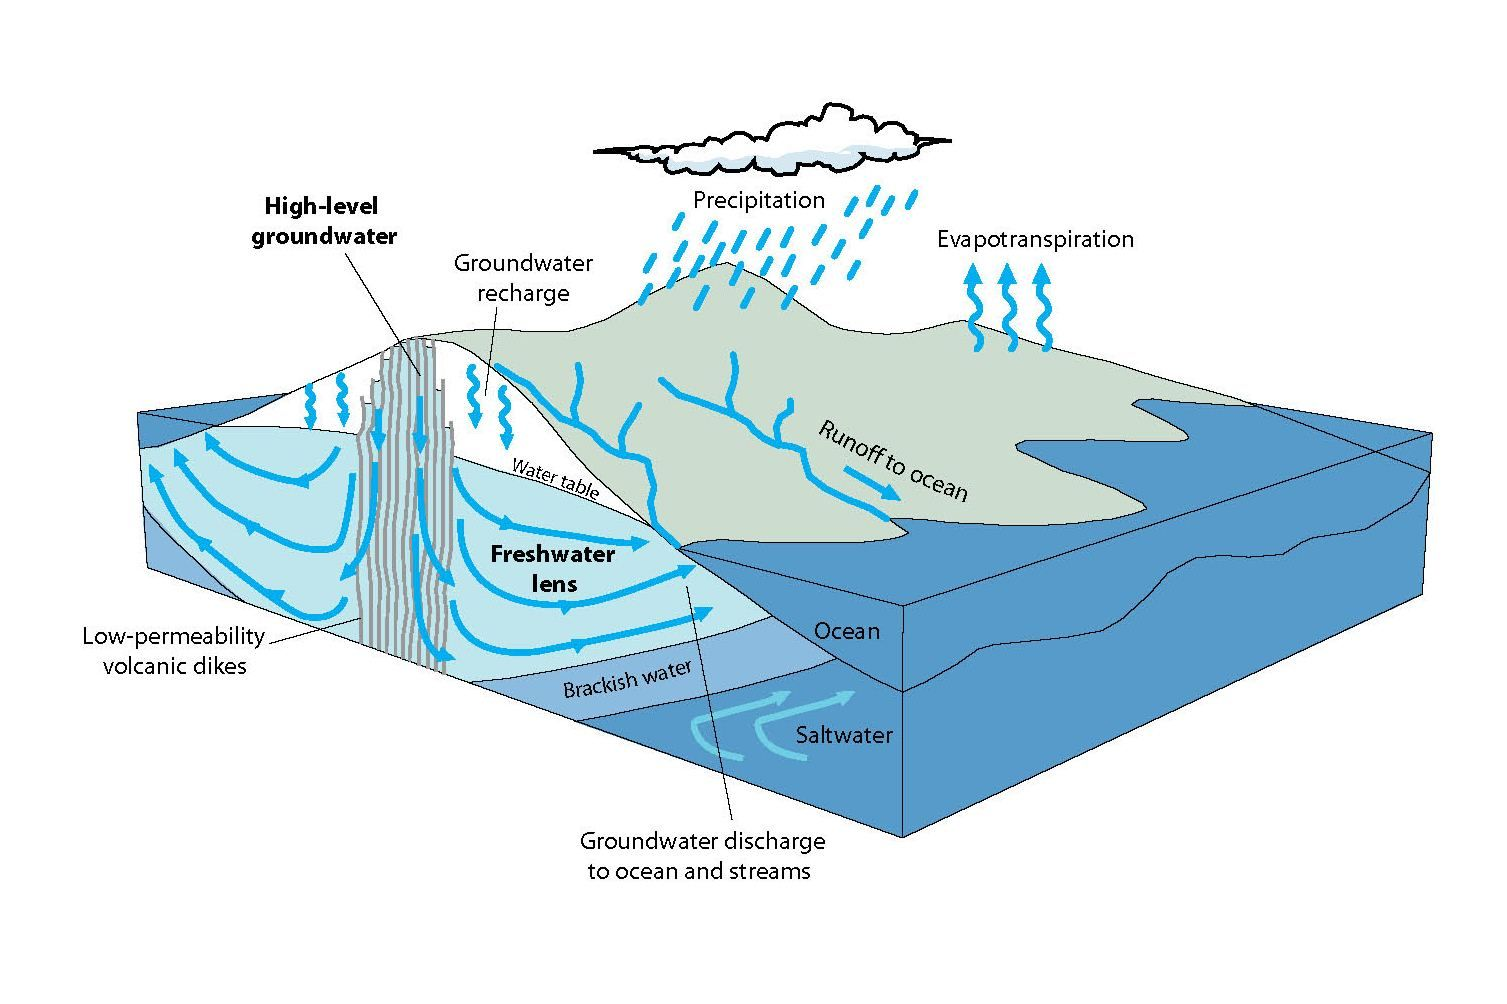 diagram showing relation between groundwater and precipitation